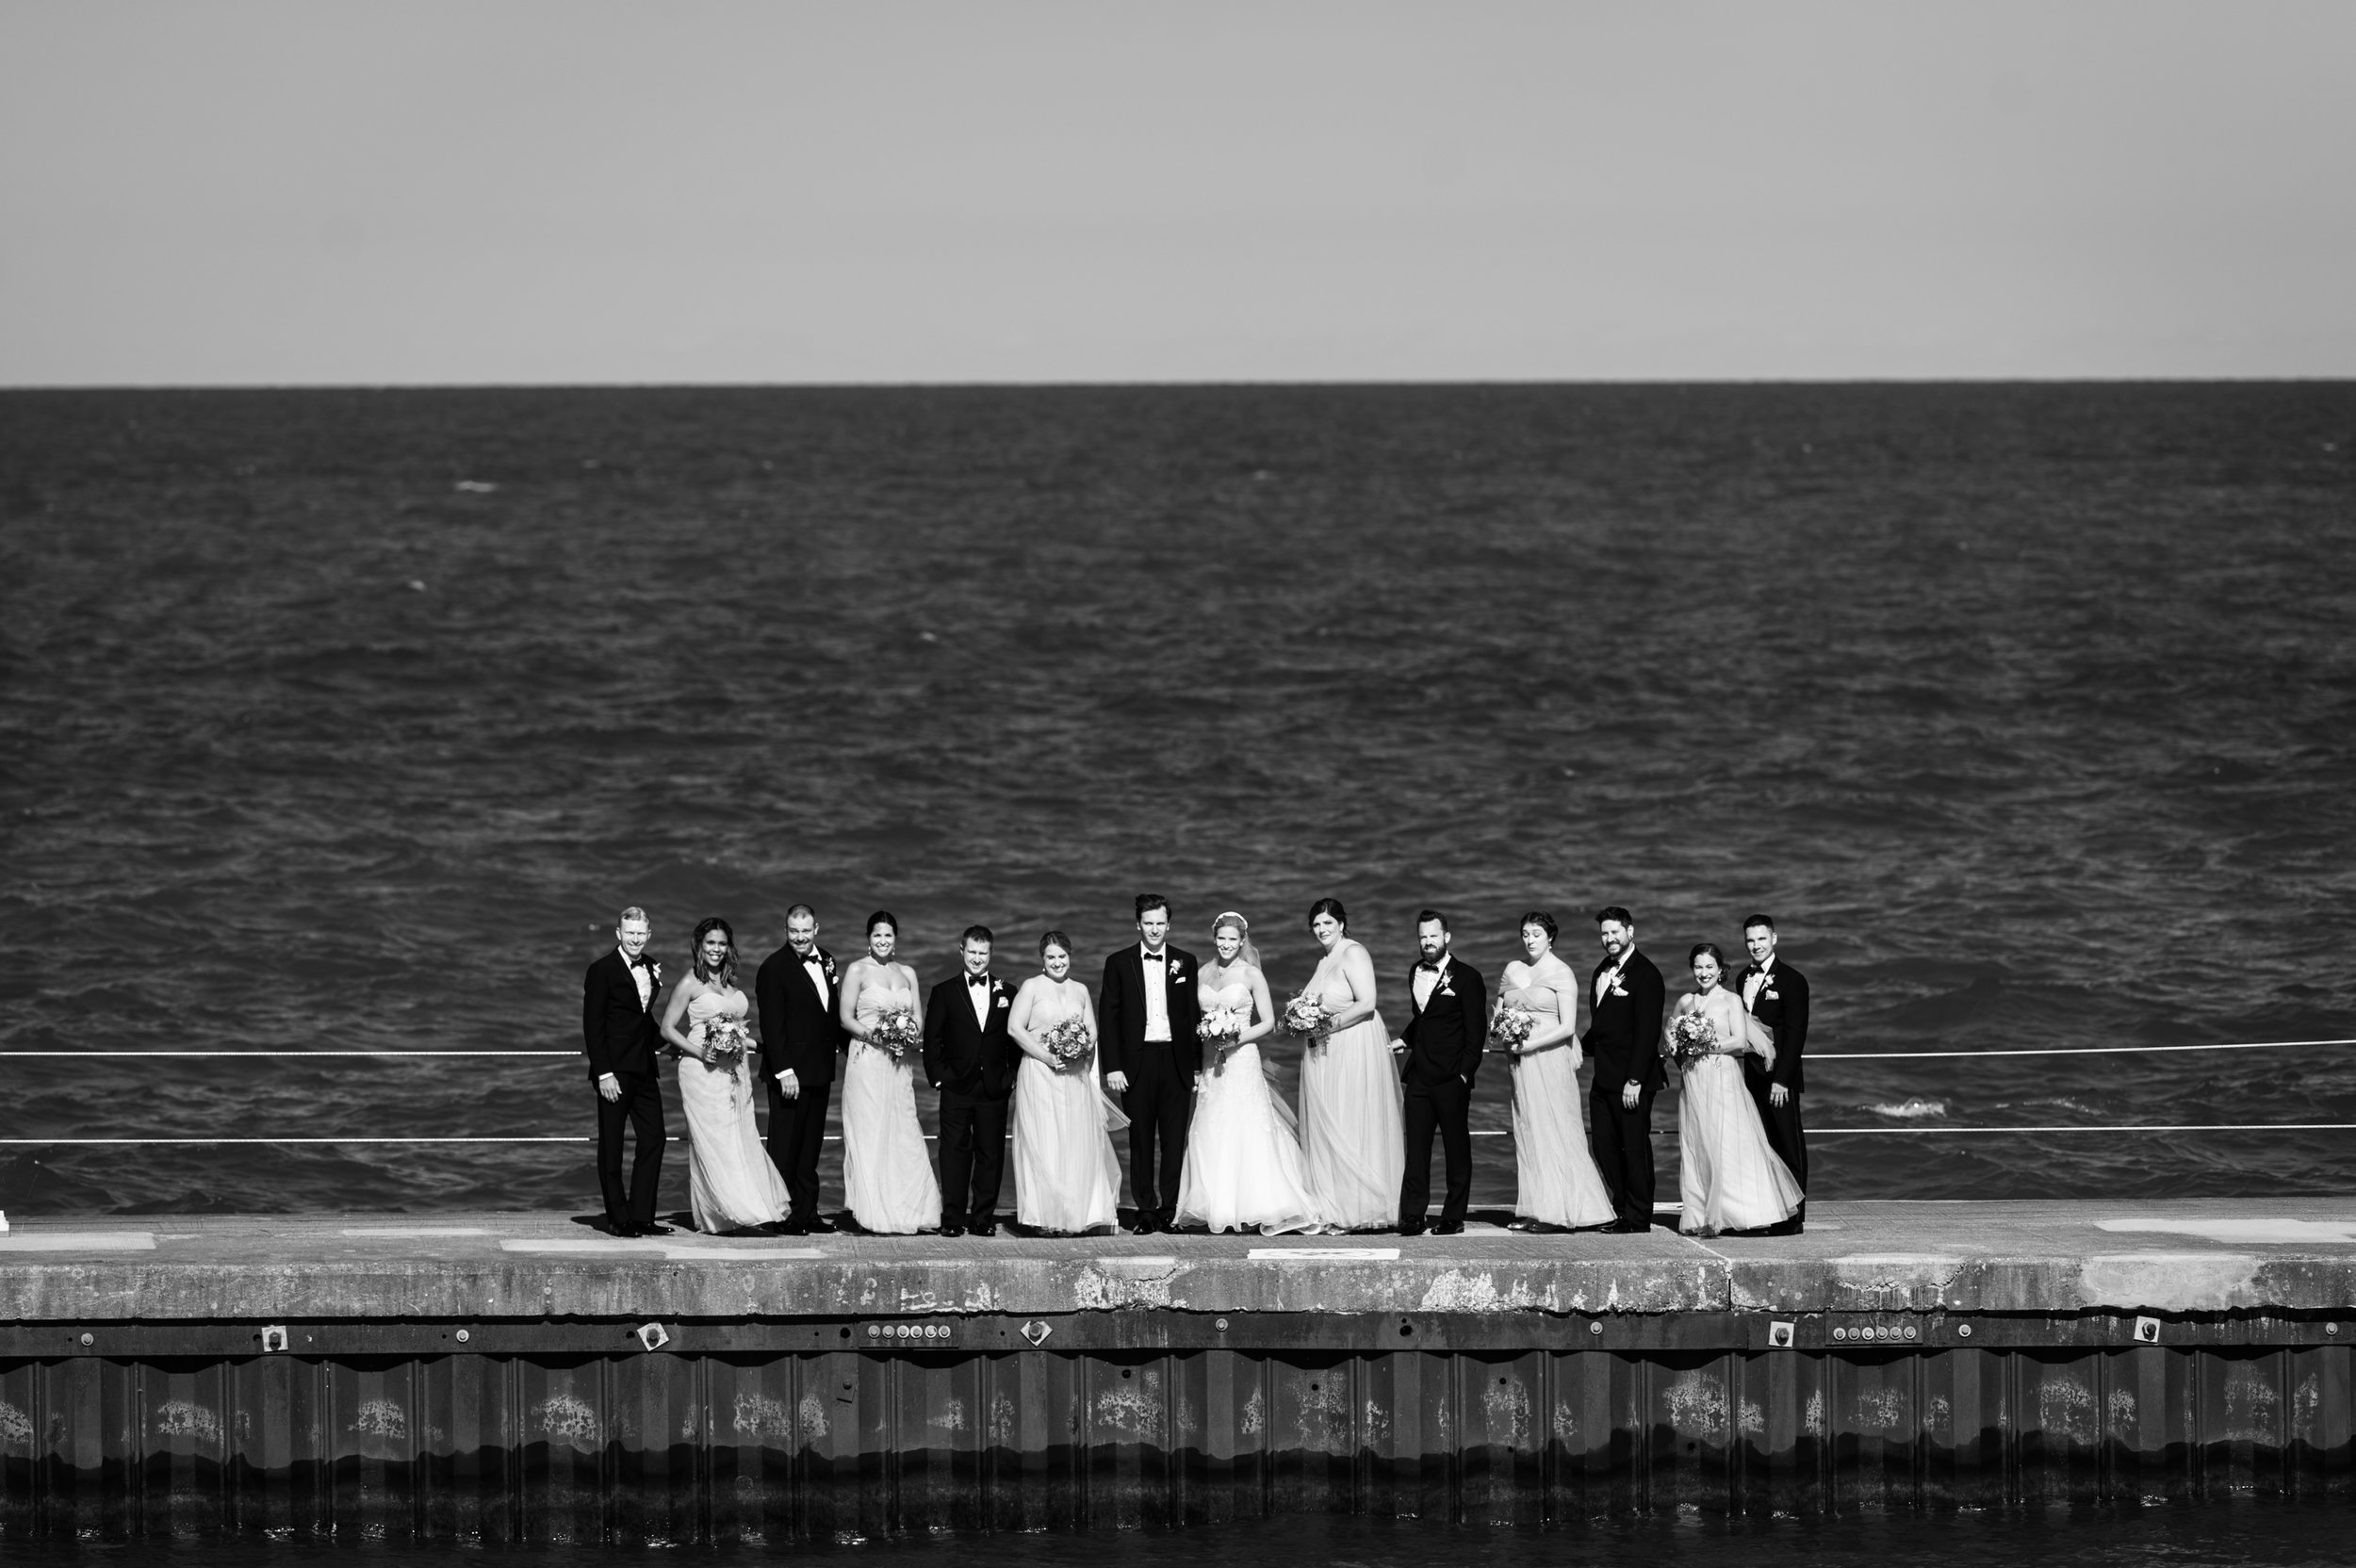 Wedding photography along the chicago lakefront